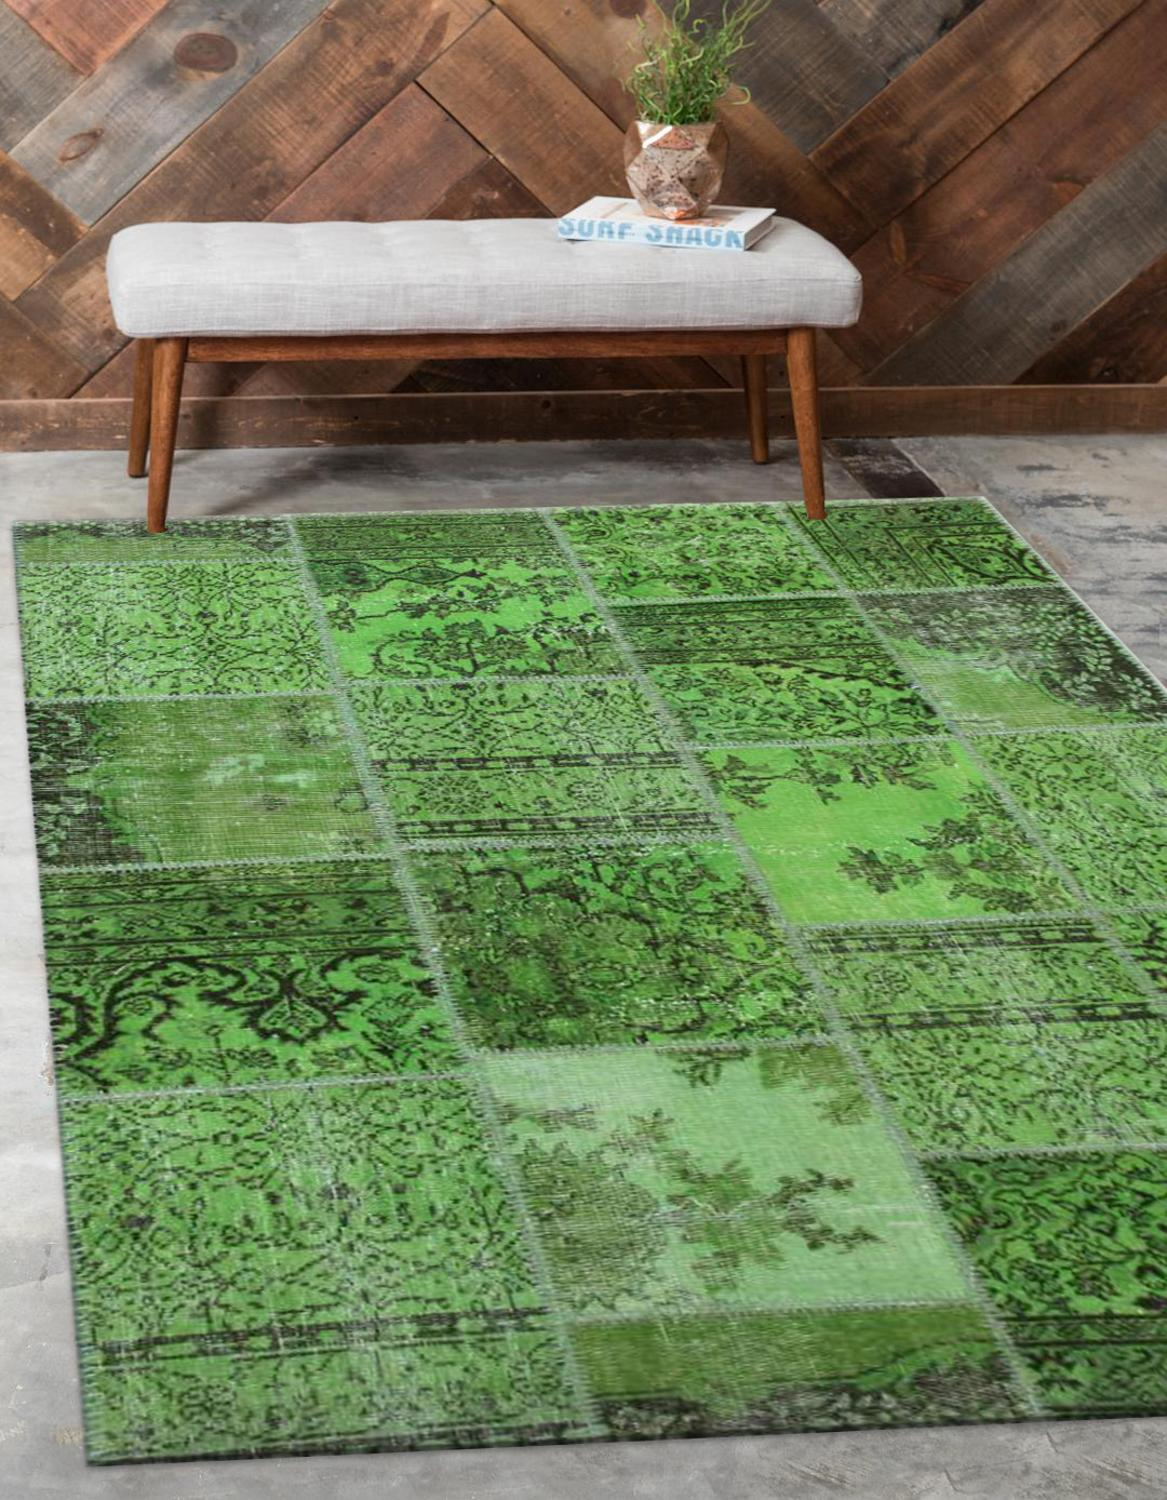 Else Green Anatolian Patchwork Rug Turkish Handmade Organic Area Rug Decorative Home Decor Wool Patchwork Rug Carpet